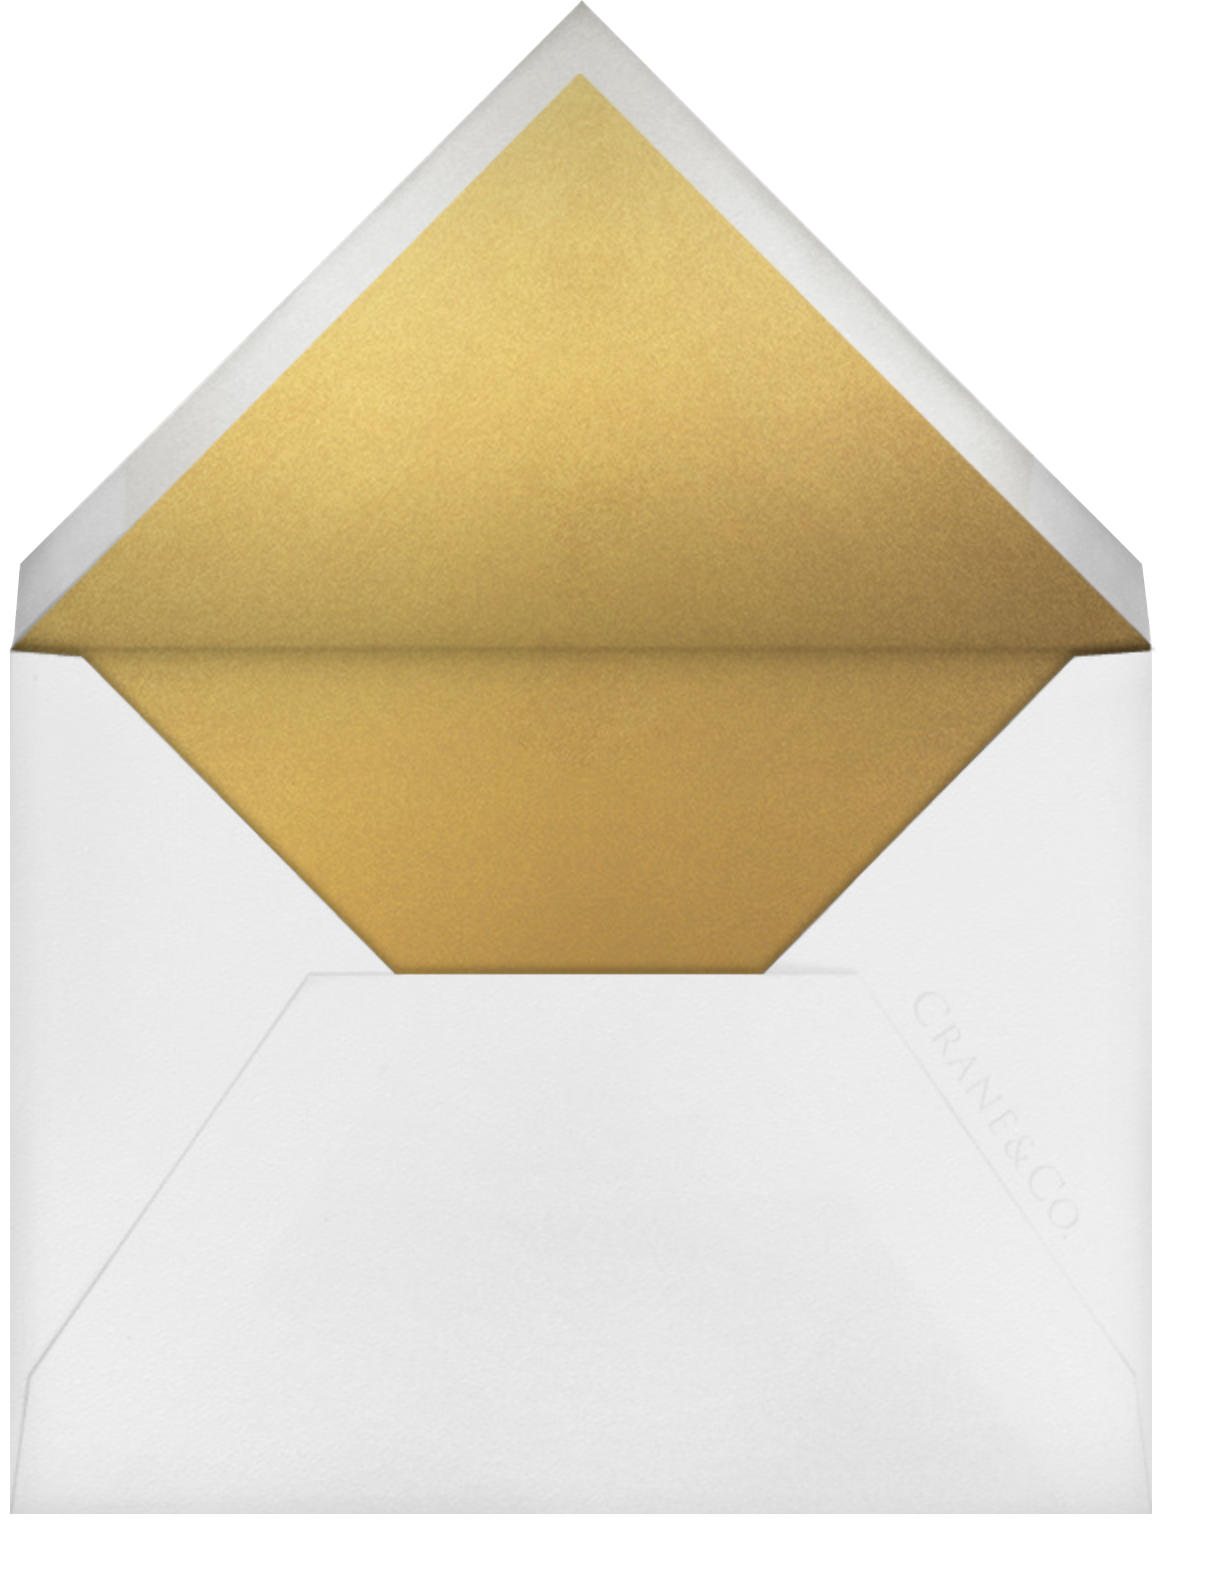 Palm Beach - Pearl White - Paperless Post - Personalized stationery - envelope back